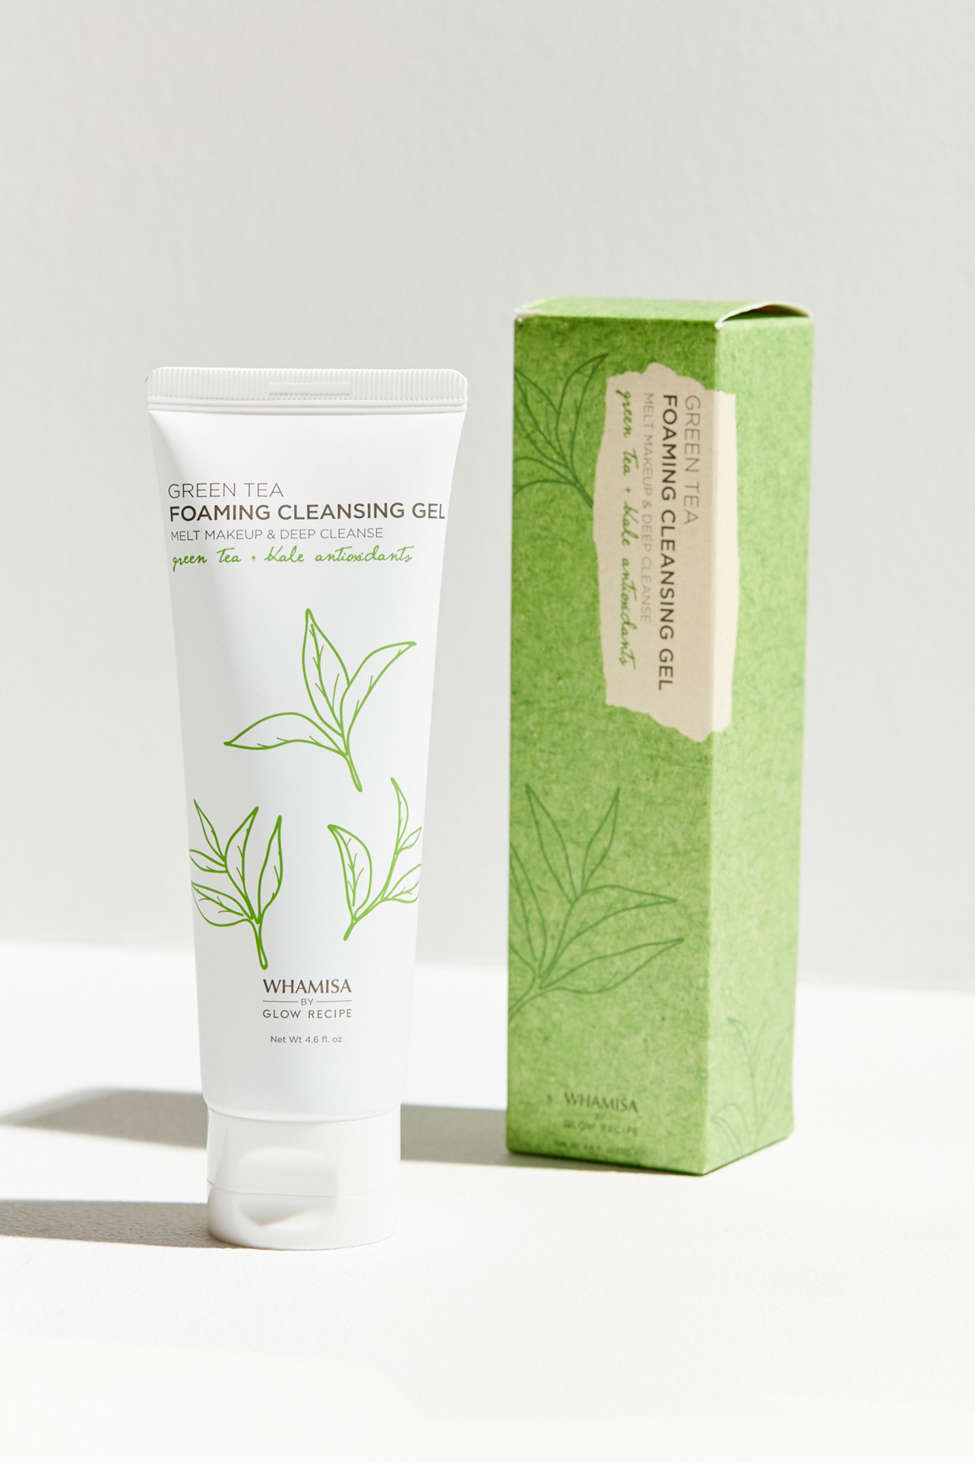 Image result for Green Tea Foaming Cleansing Gel Whamisa